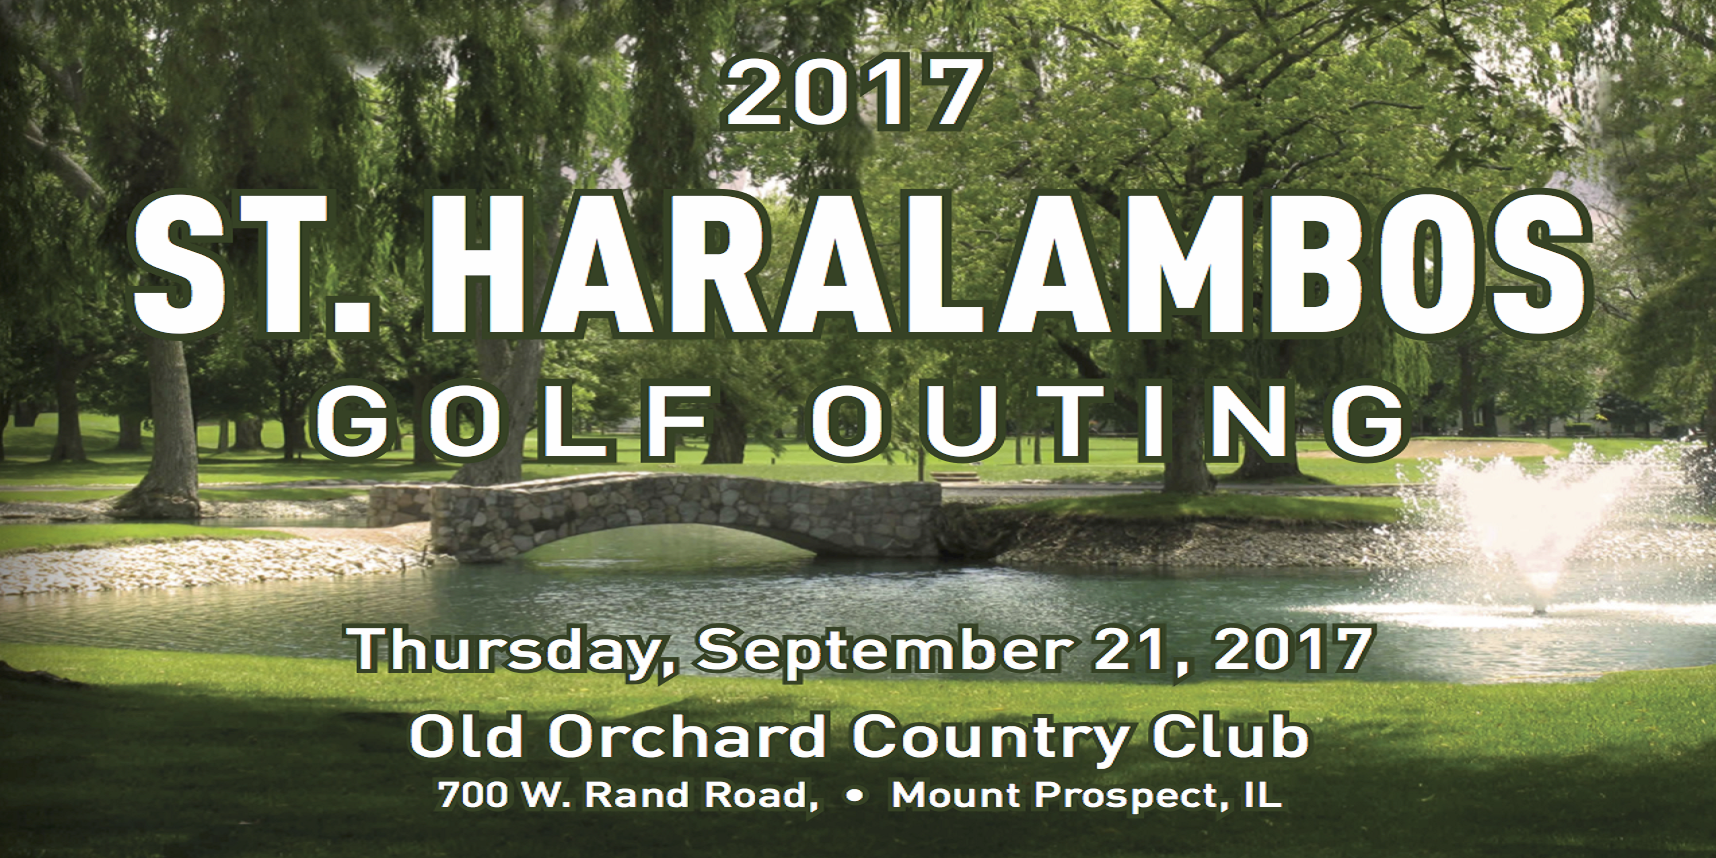 Saint Haralambos Golf Outing - 2017 Carousel